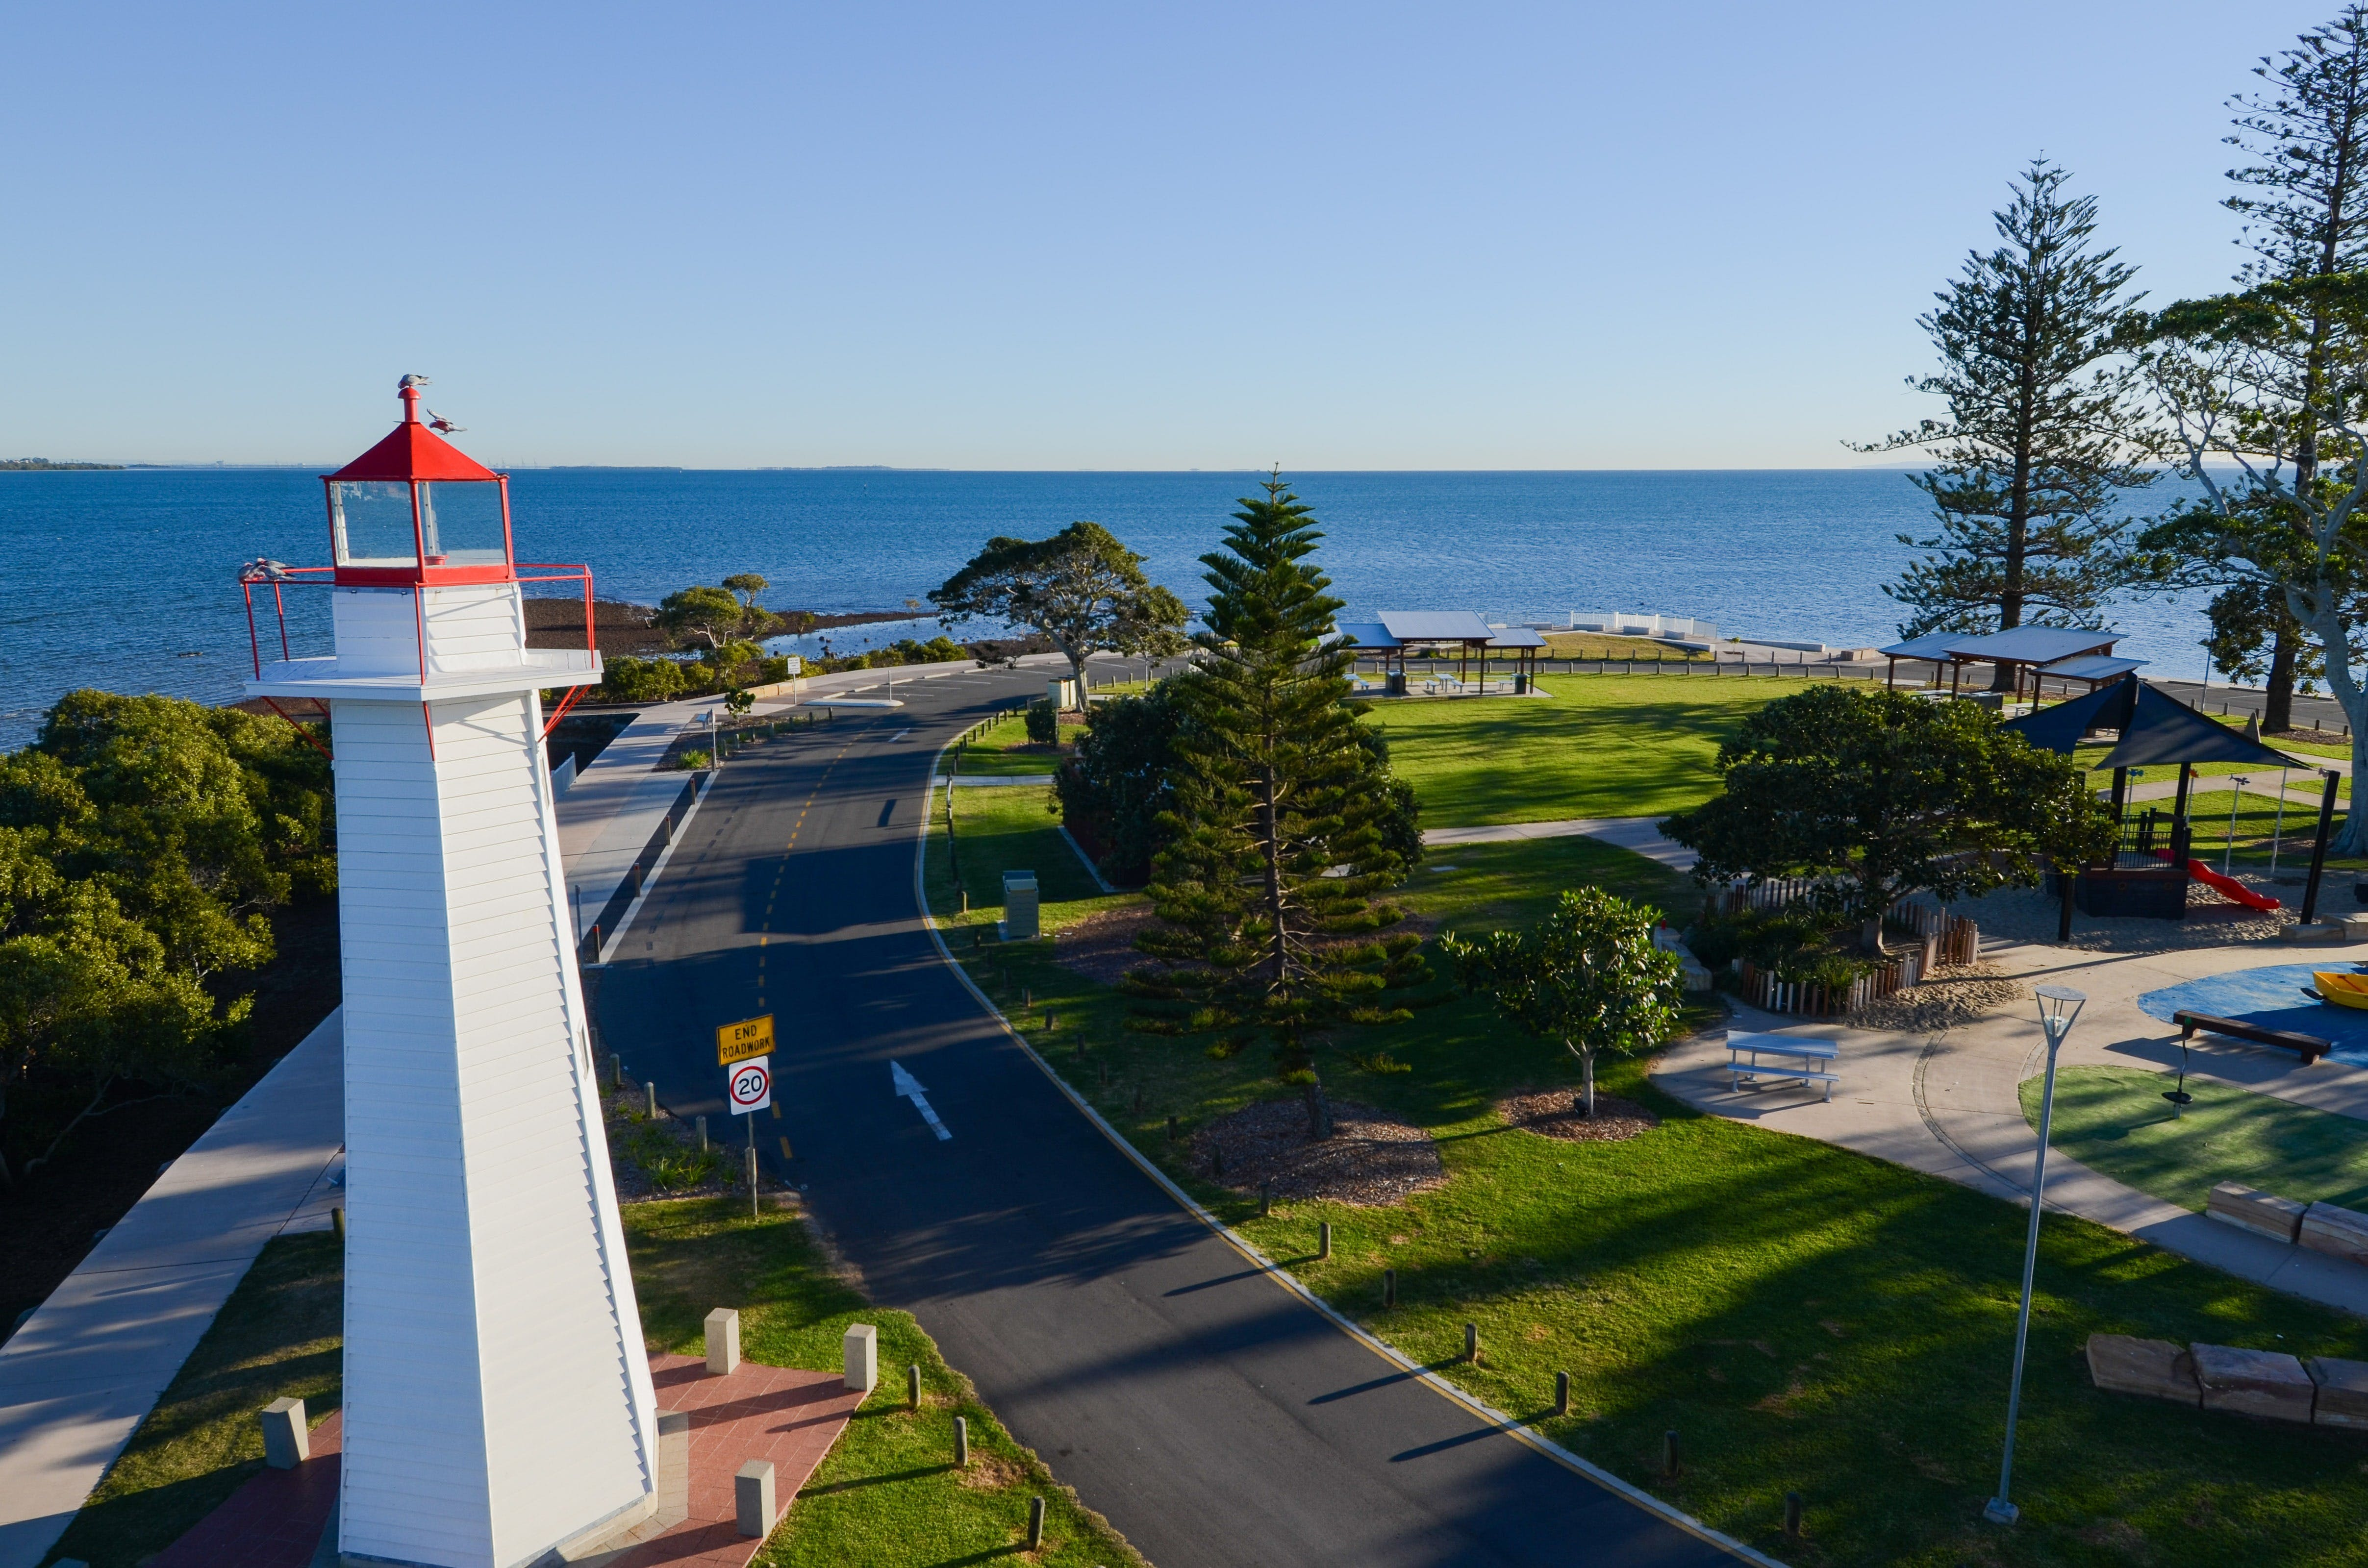 Cleveland Point Reserve - Find Attractions